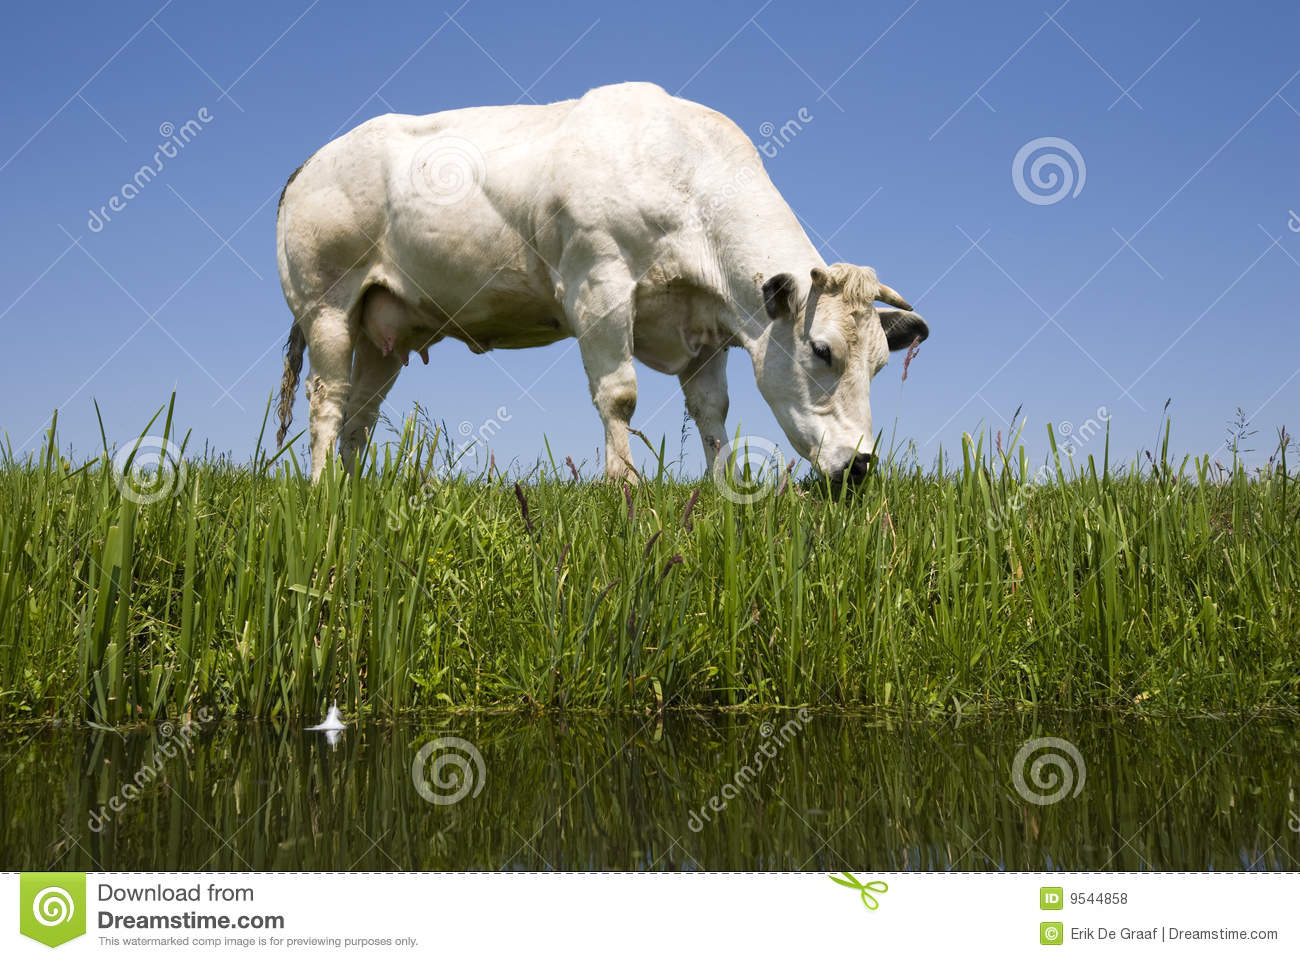 how to say cow in dutch